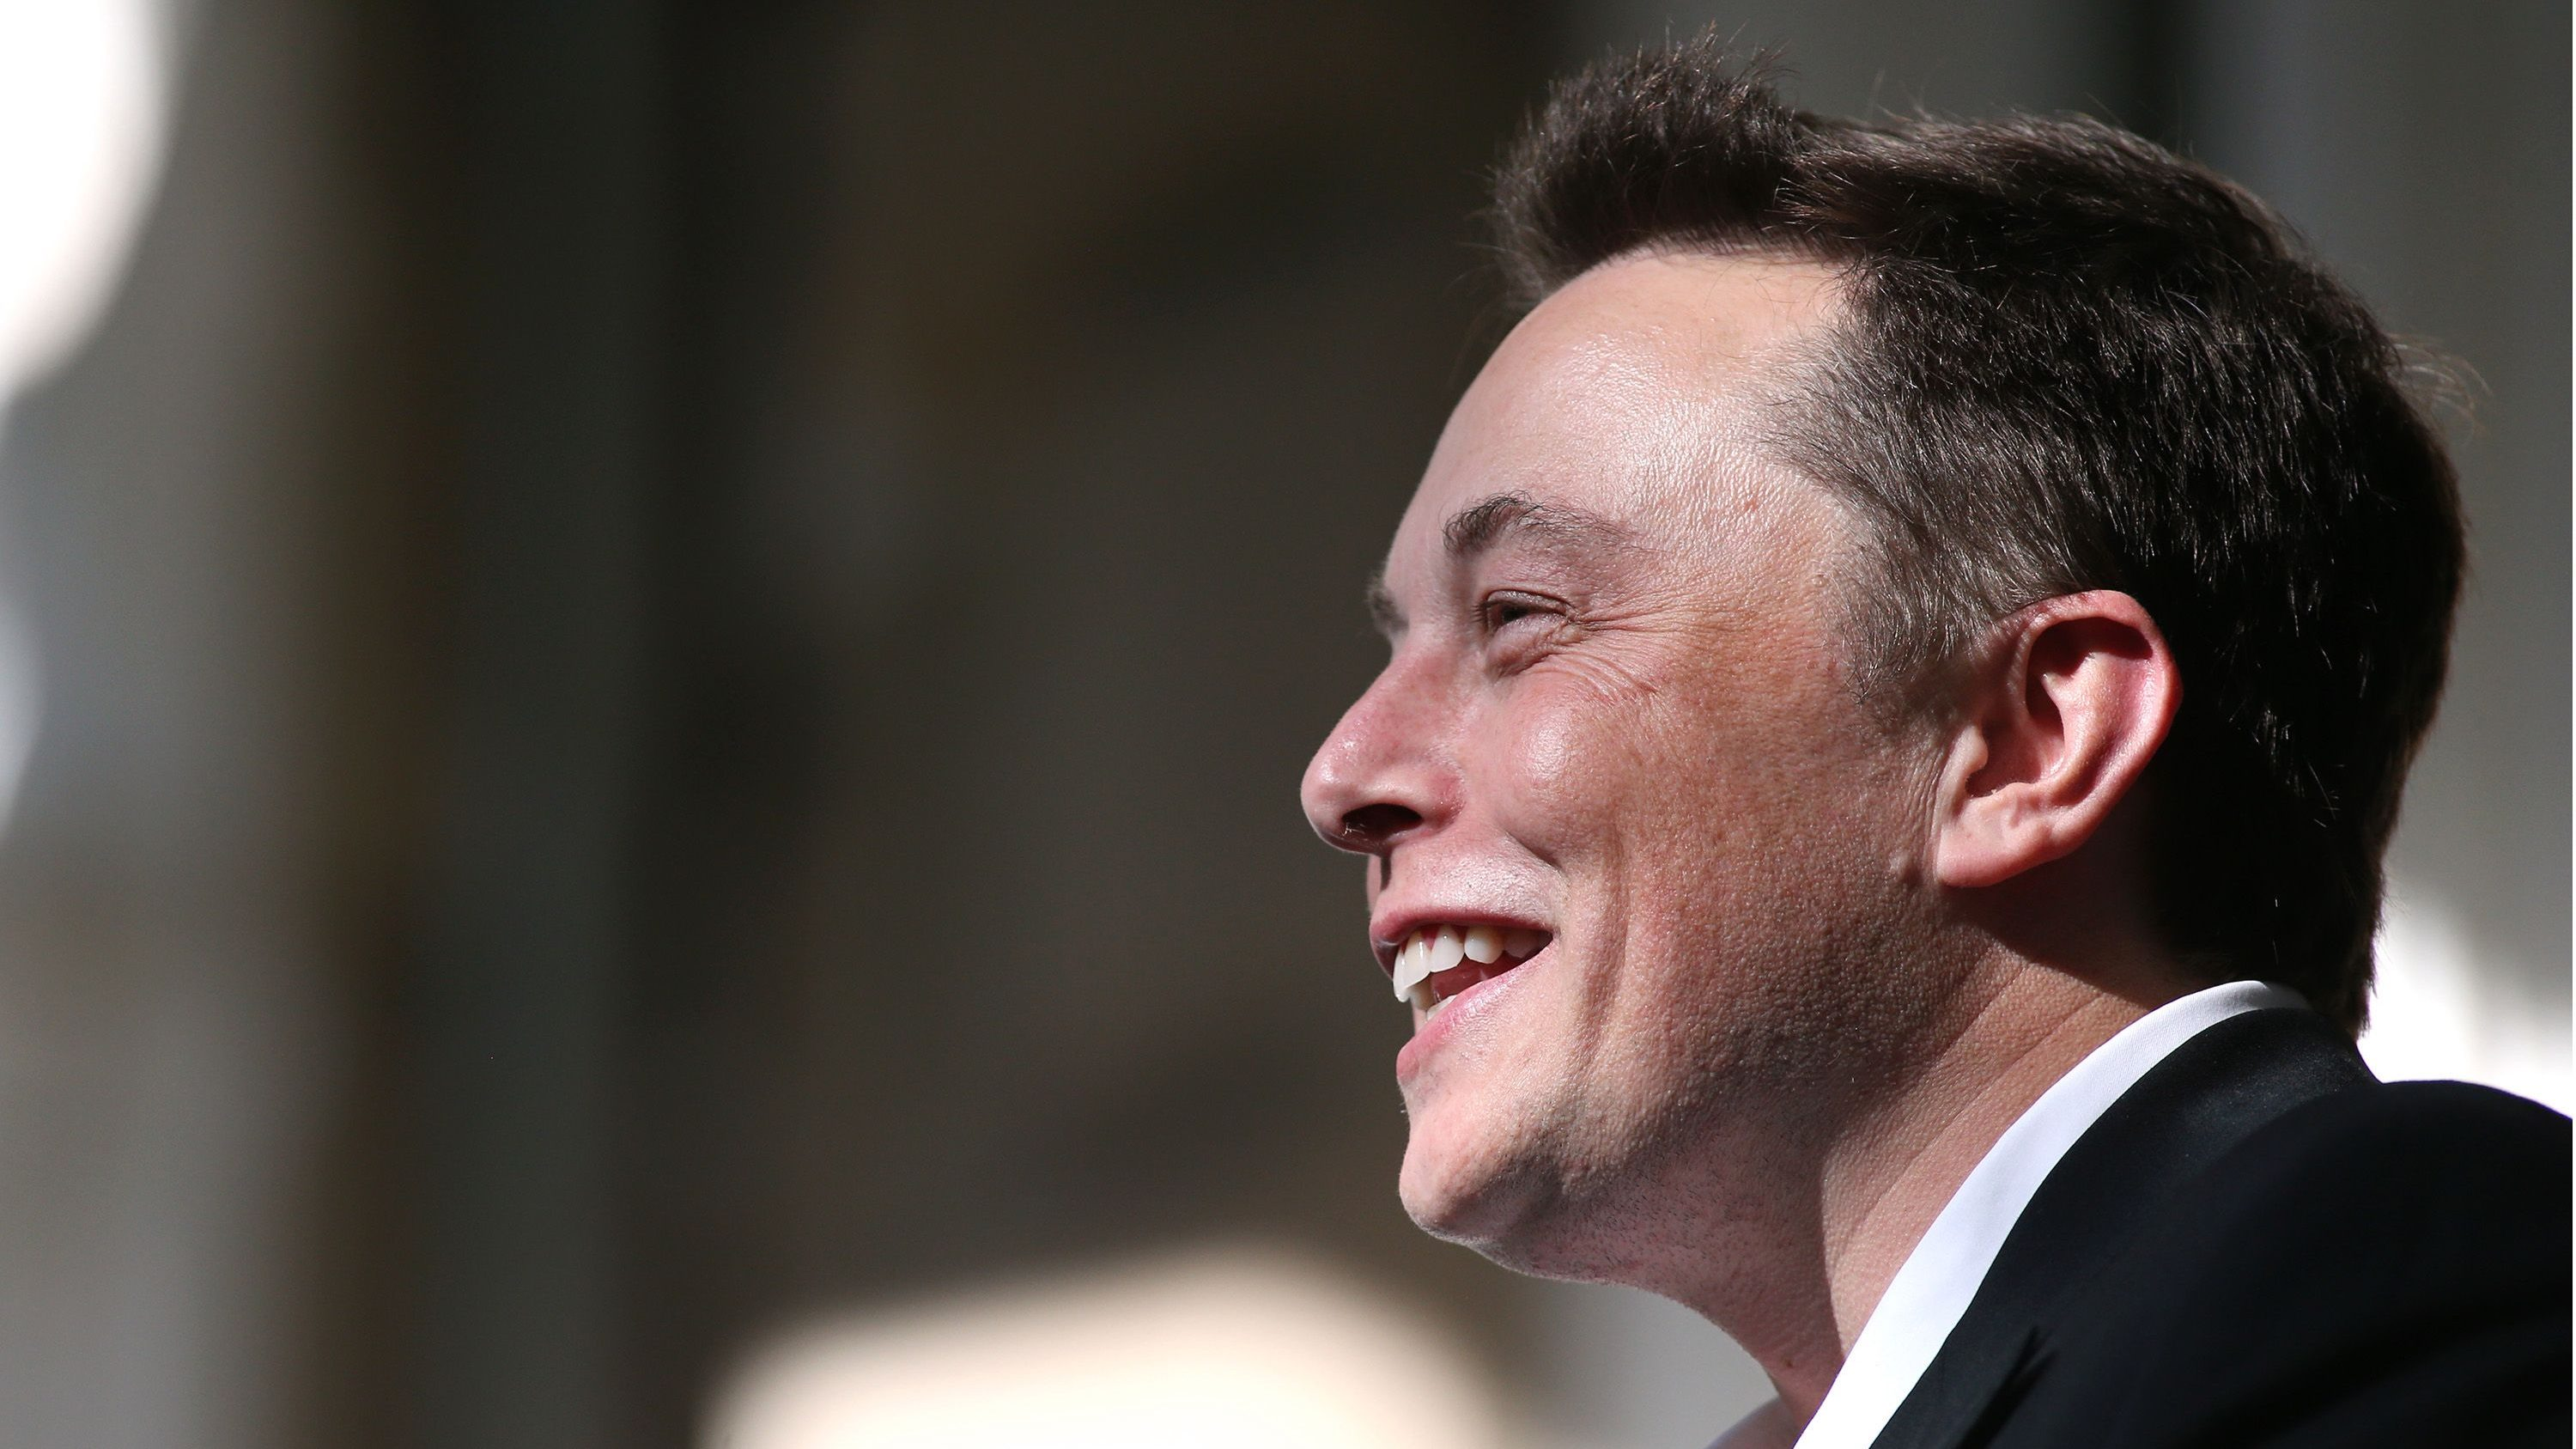 Tesla Motors CEO Elon Musk speaks at a press conference after Nevada was chosen as the new site for a $5 billion car battery gigafactory, which will be built east of Reno. Several hundred people attended the media event at the Capitol in Carson City, Nev., on Thursday, Sept. 4, 2014. (AP Photo/Cathleen Allison)